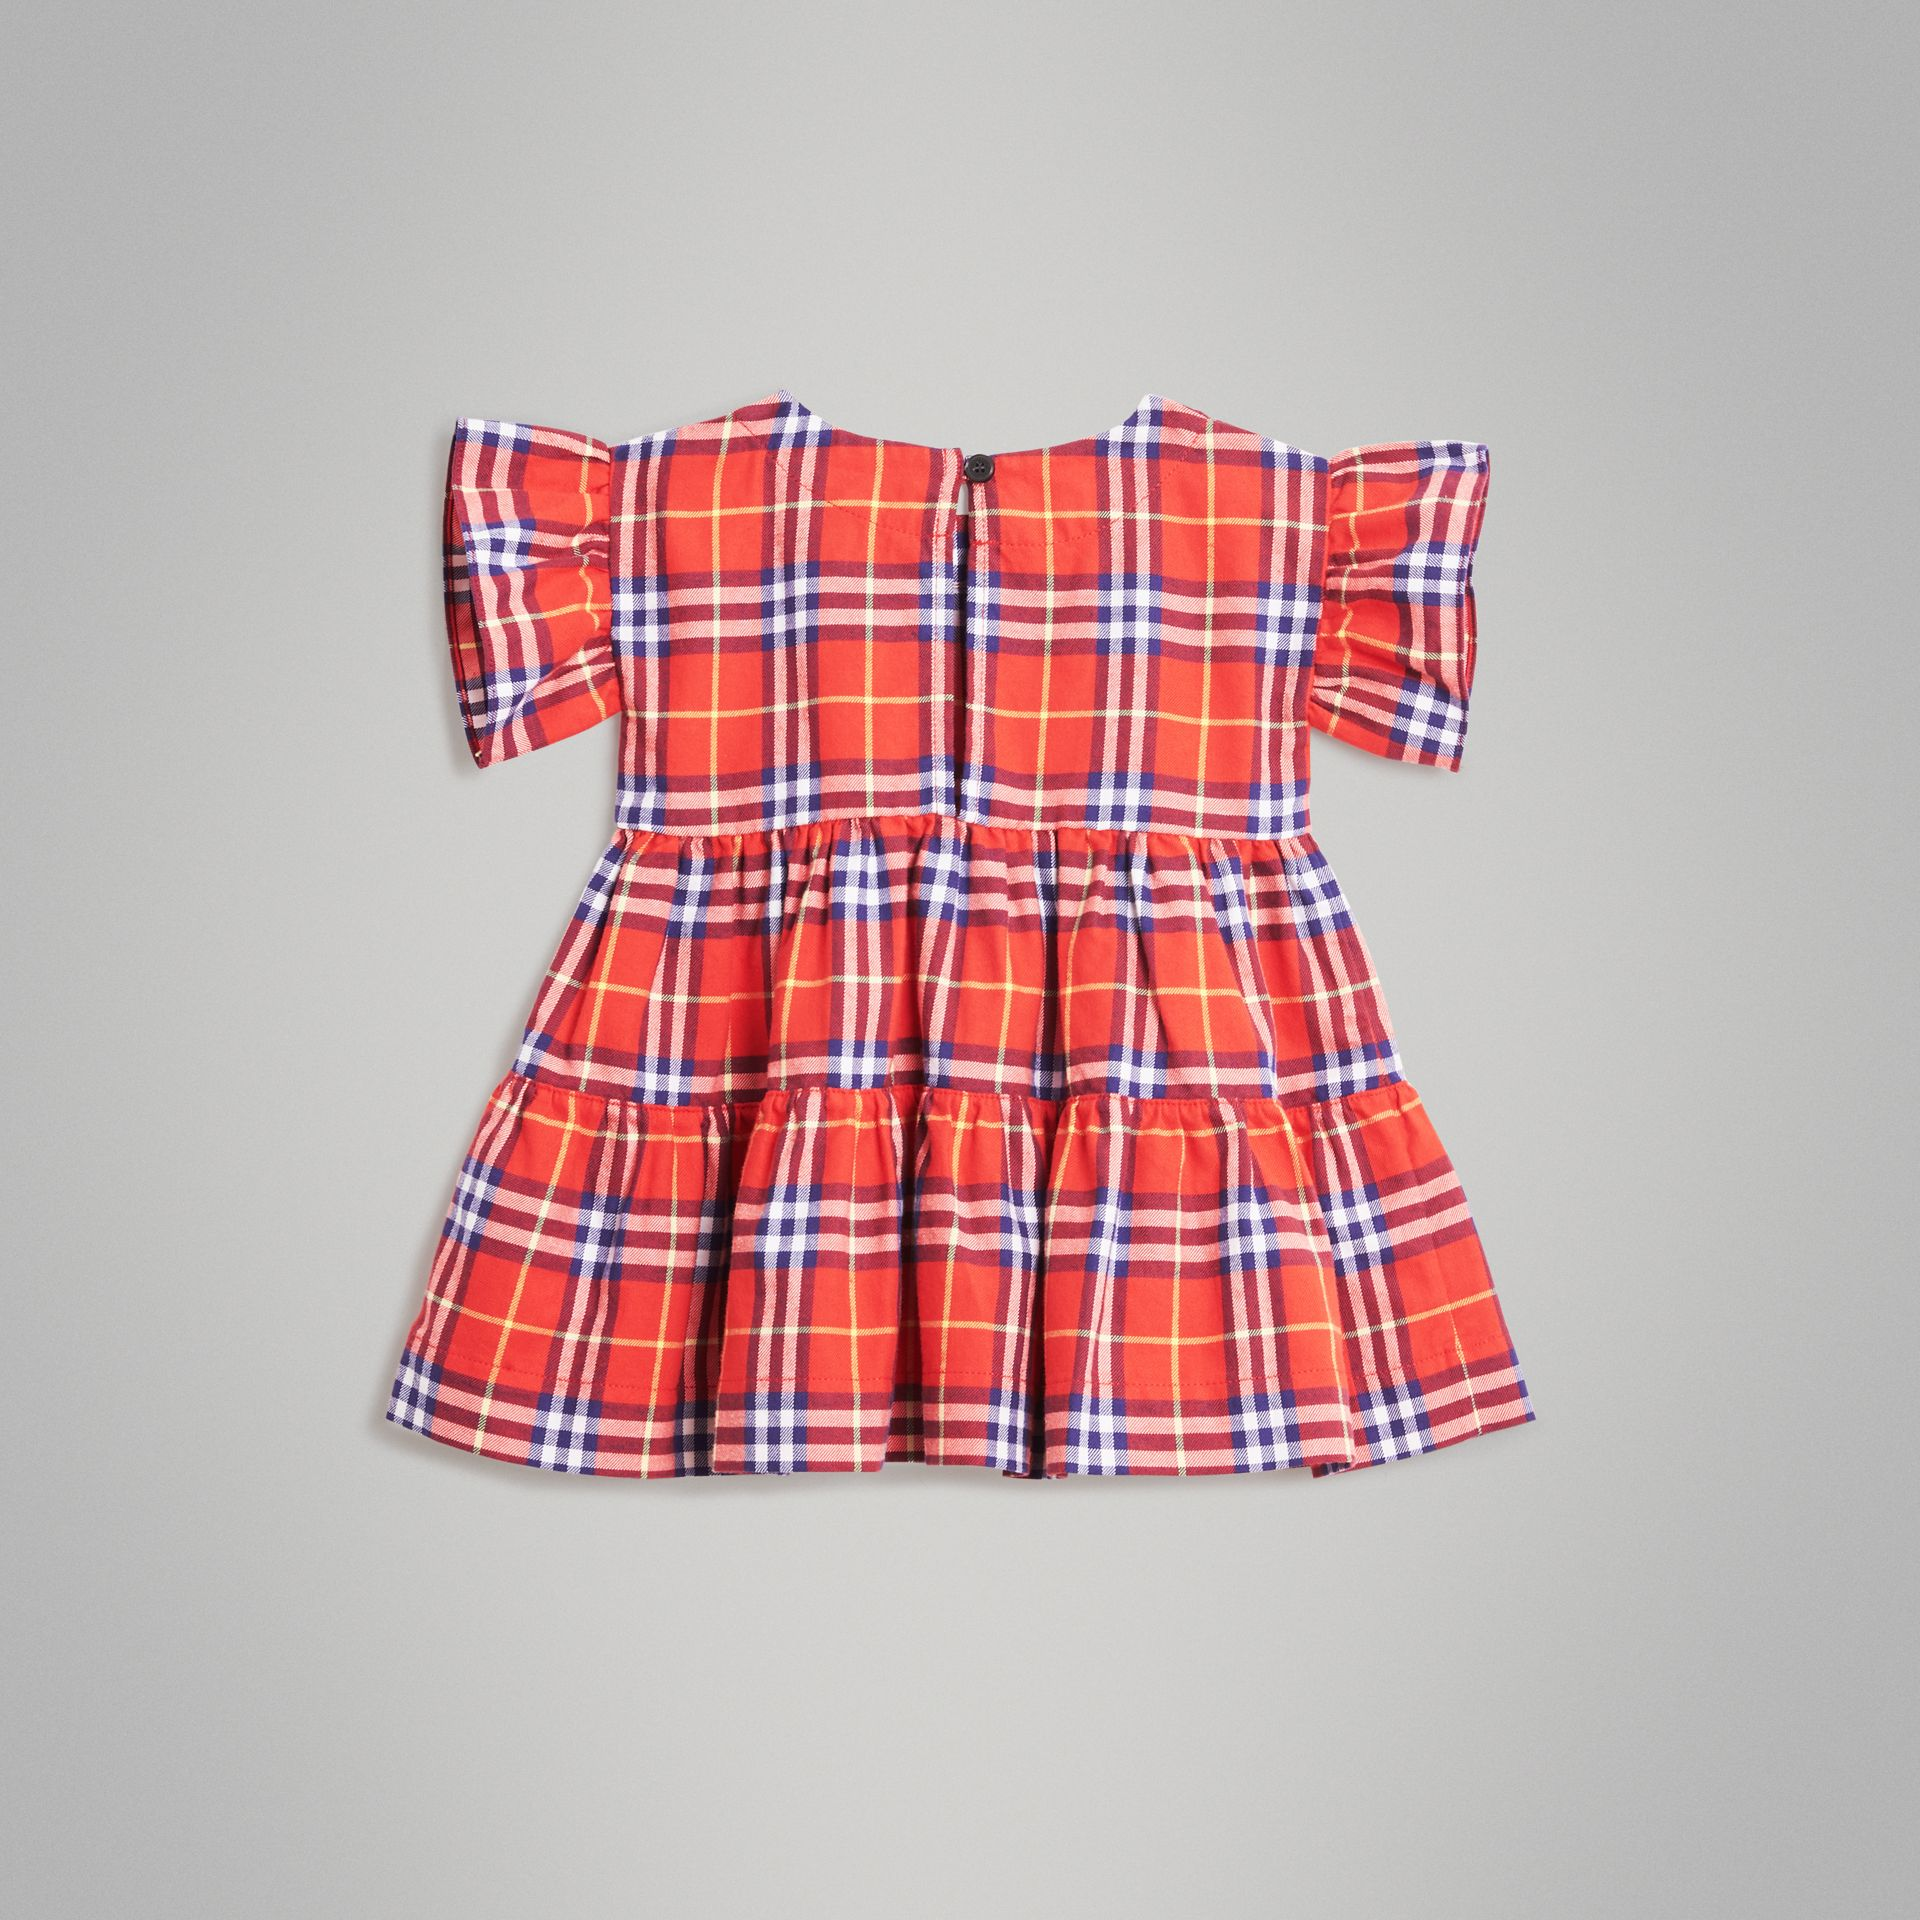 Ruffle Detail Cotton Check Dress in Orange Red - Children | Burberry United Kingdom - gallery image 3